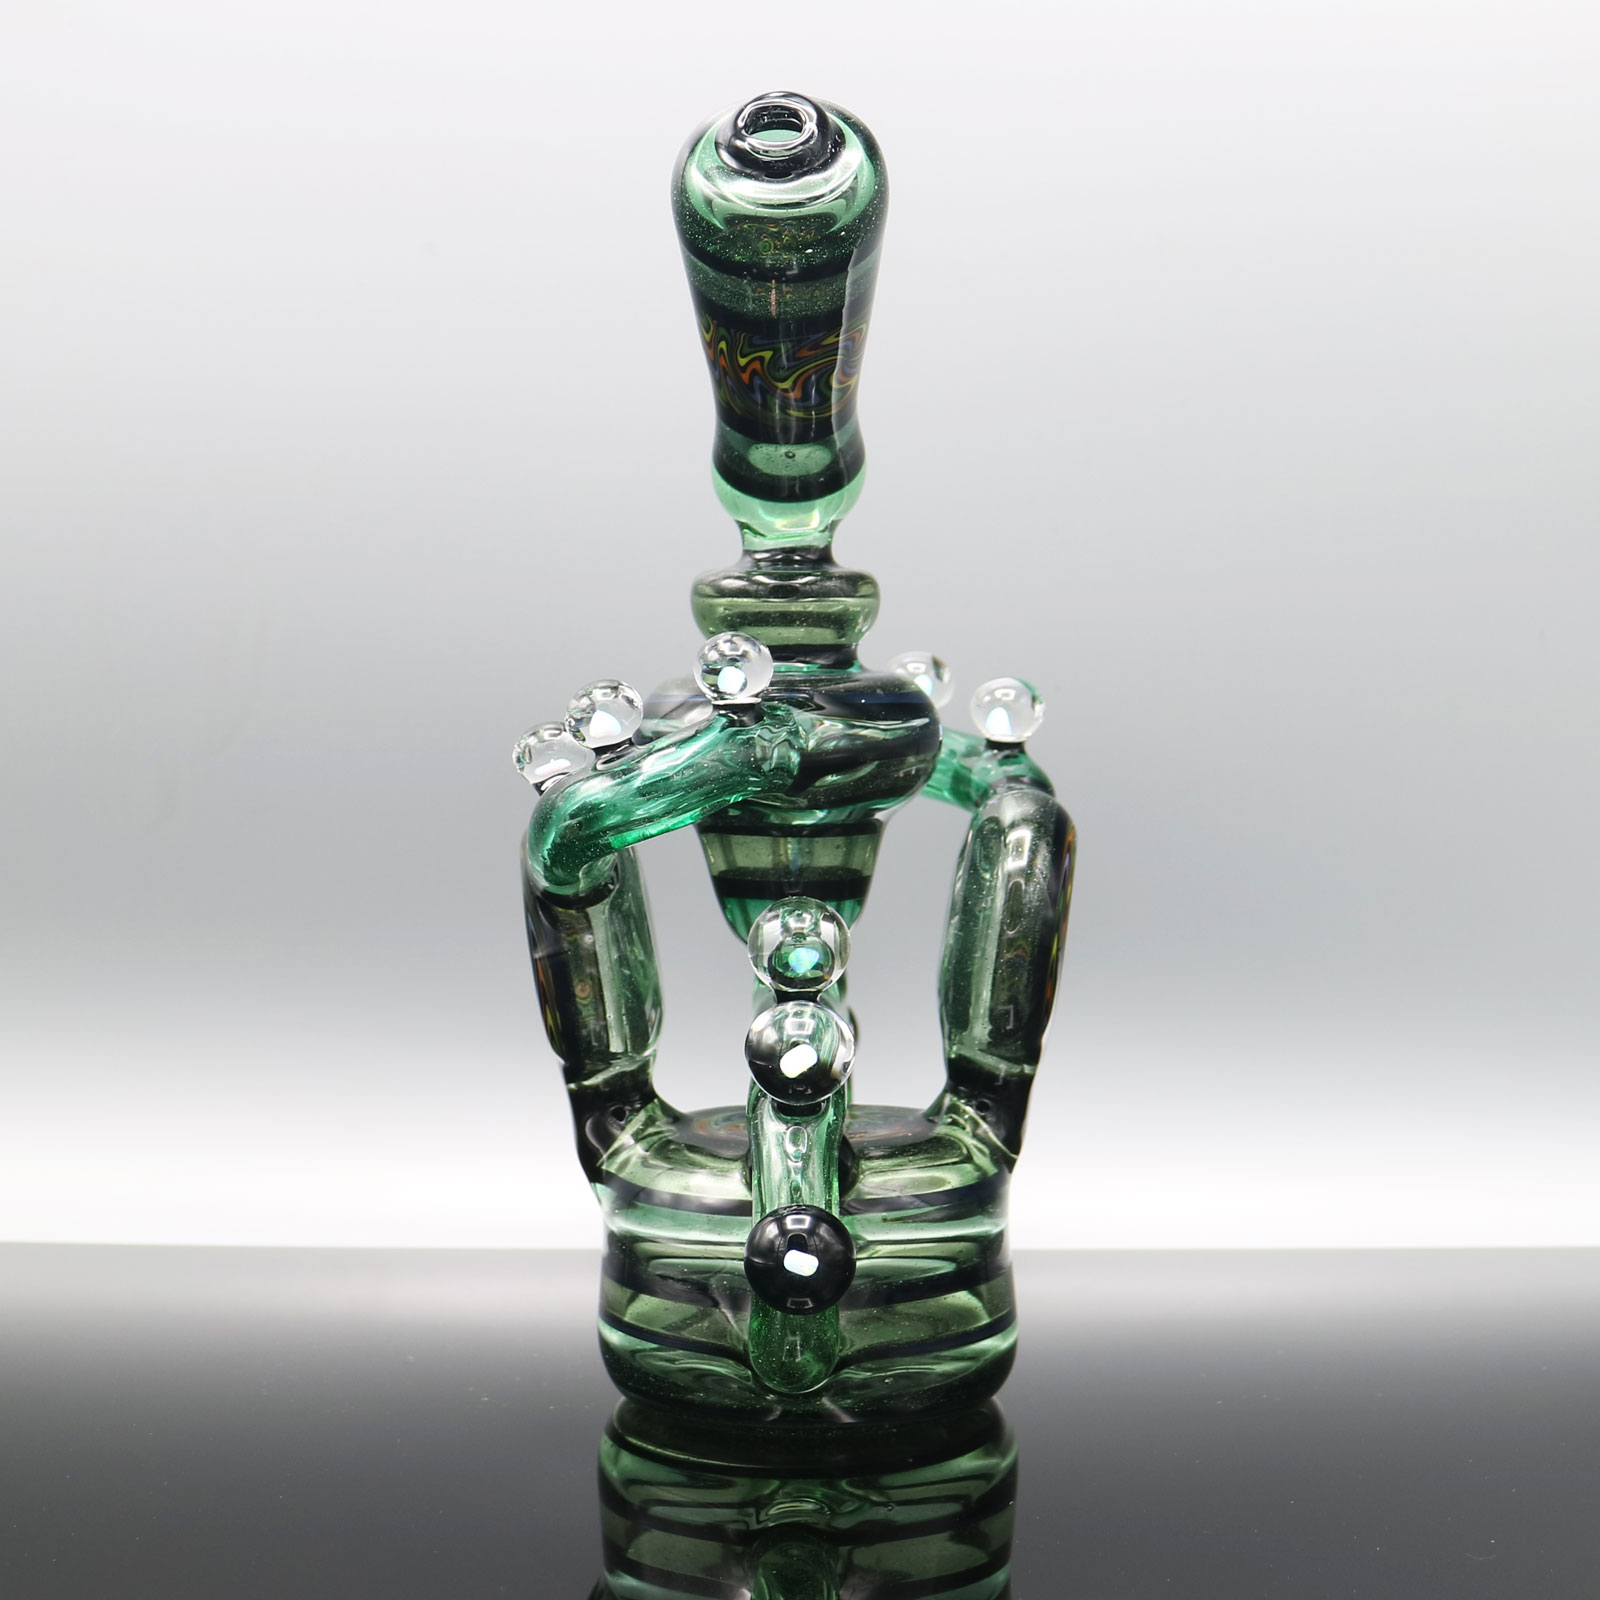 Chappell Glass – Double Disc Recycler